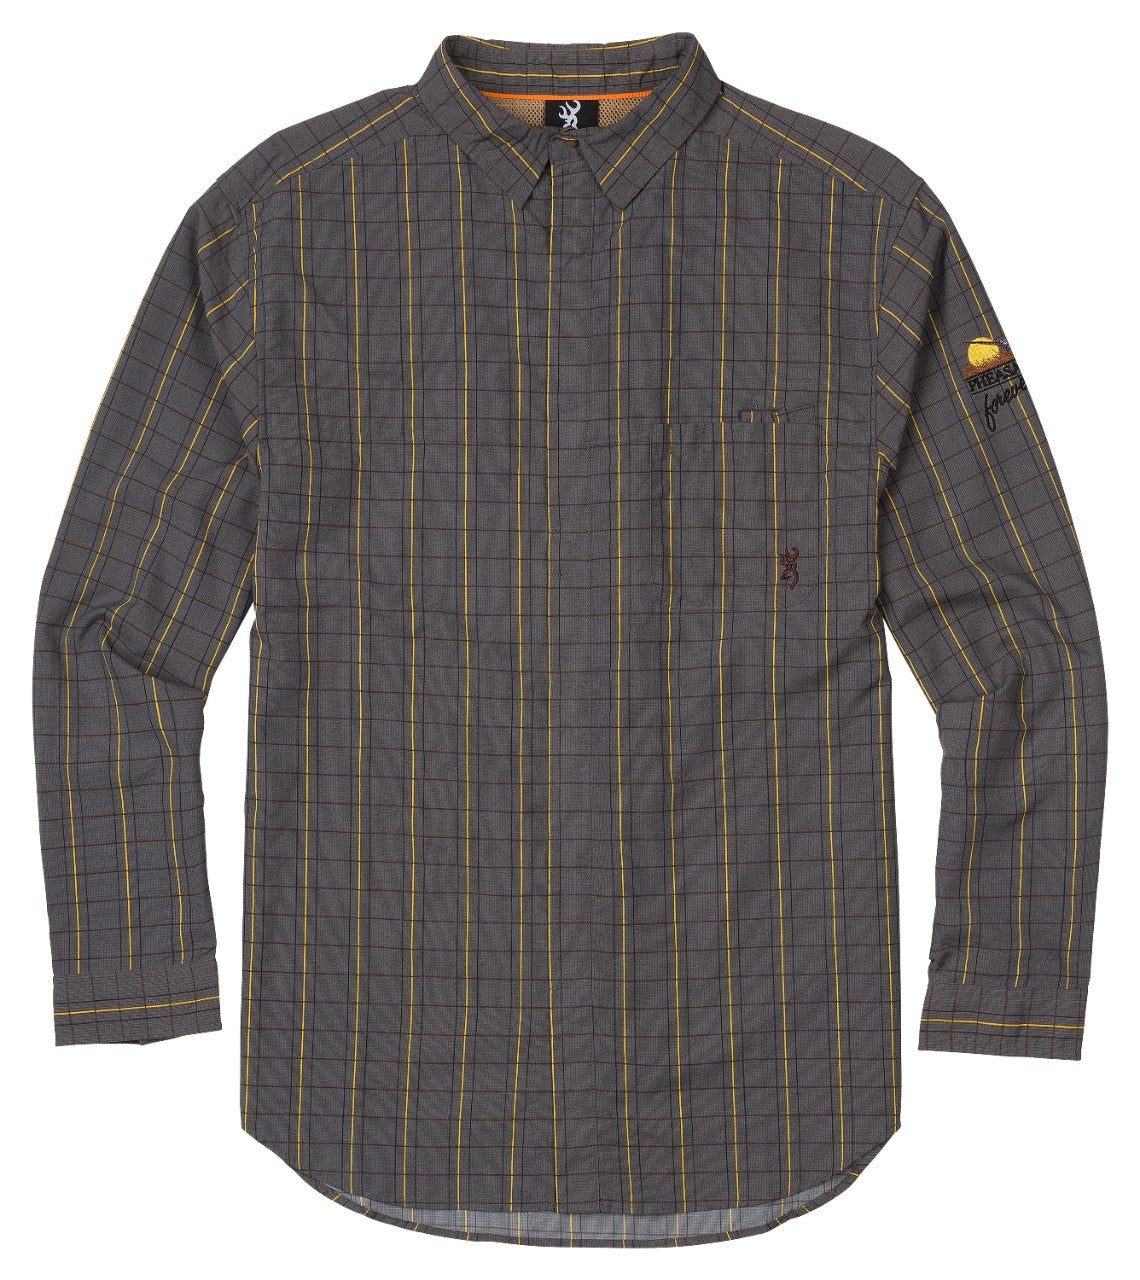 SHT,LIGHTWEIGHT,PF,PLAID,2XL